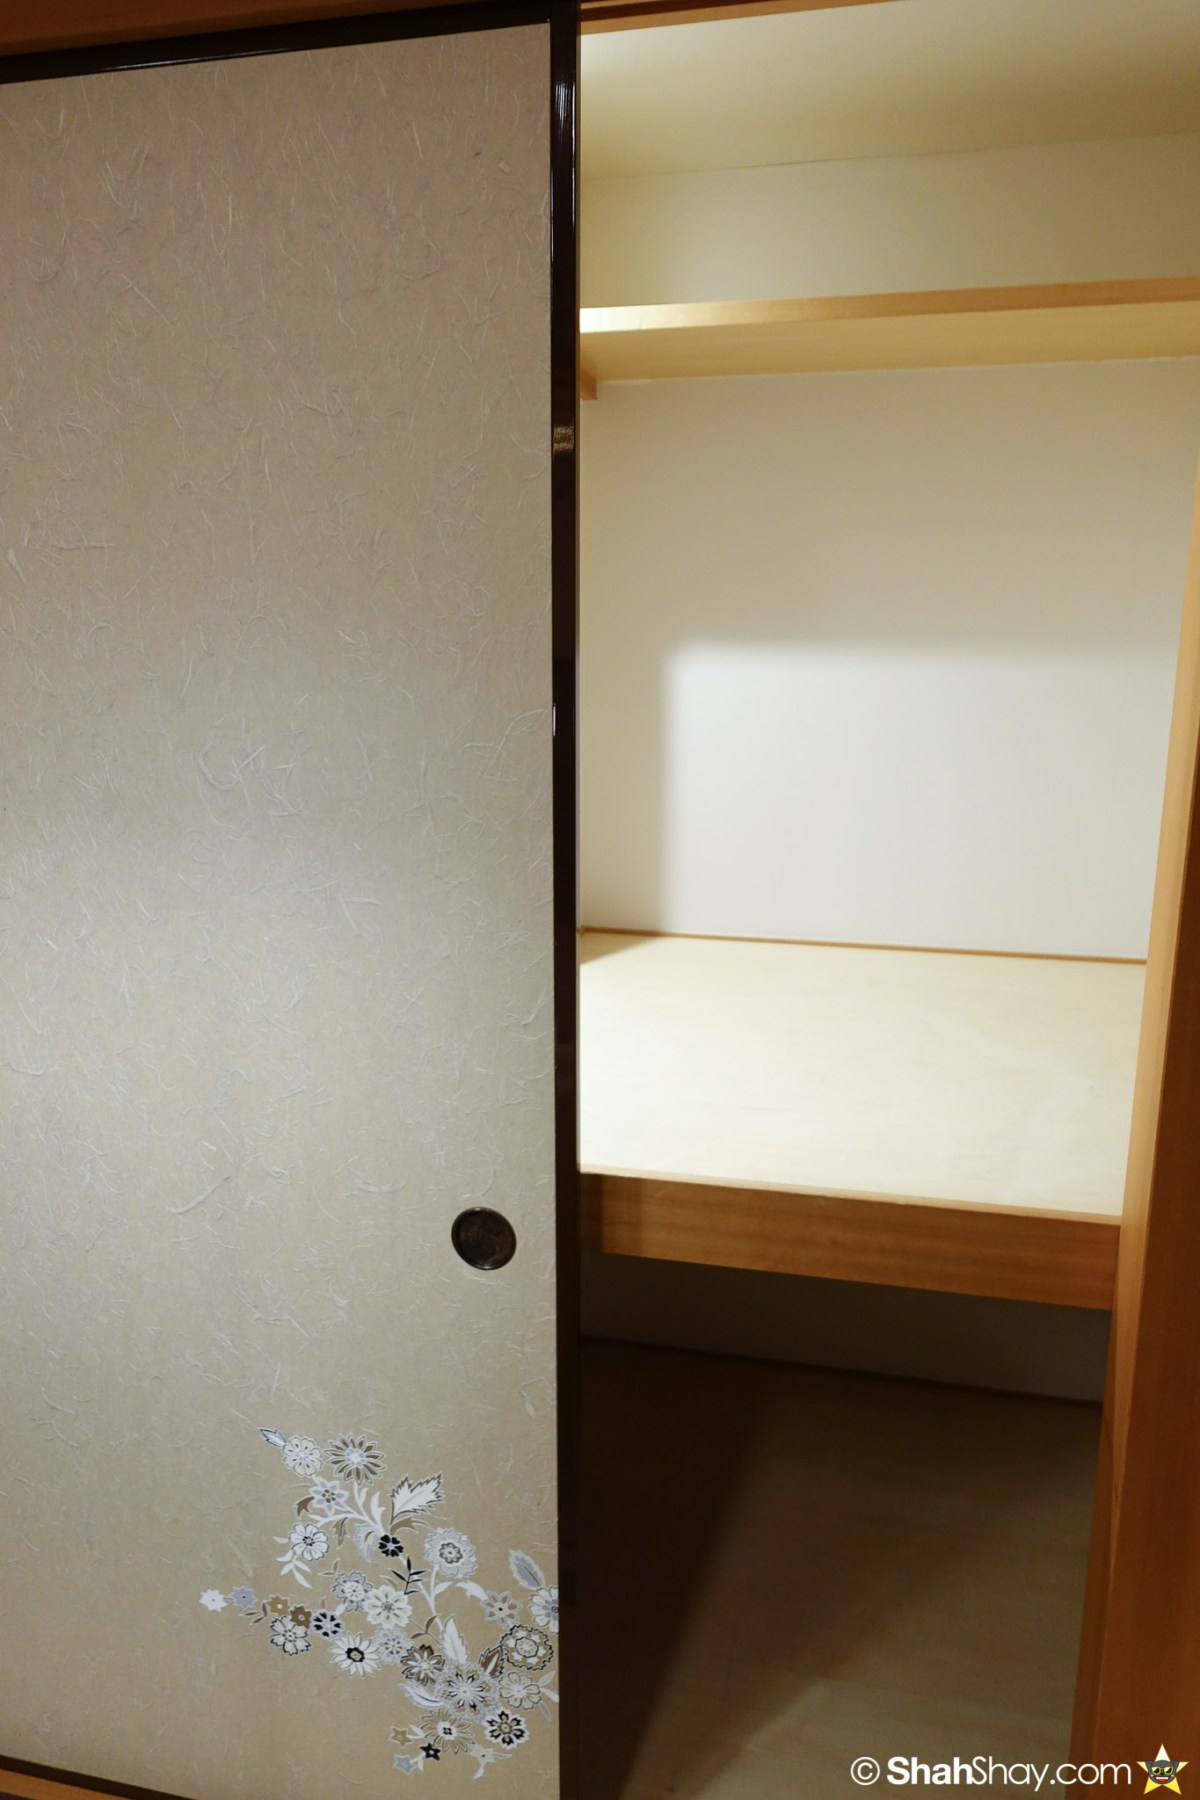 Ritz Tokyo Accommodation with so much storage space!